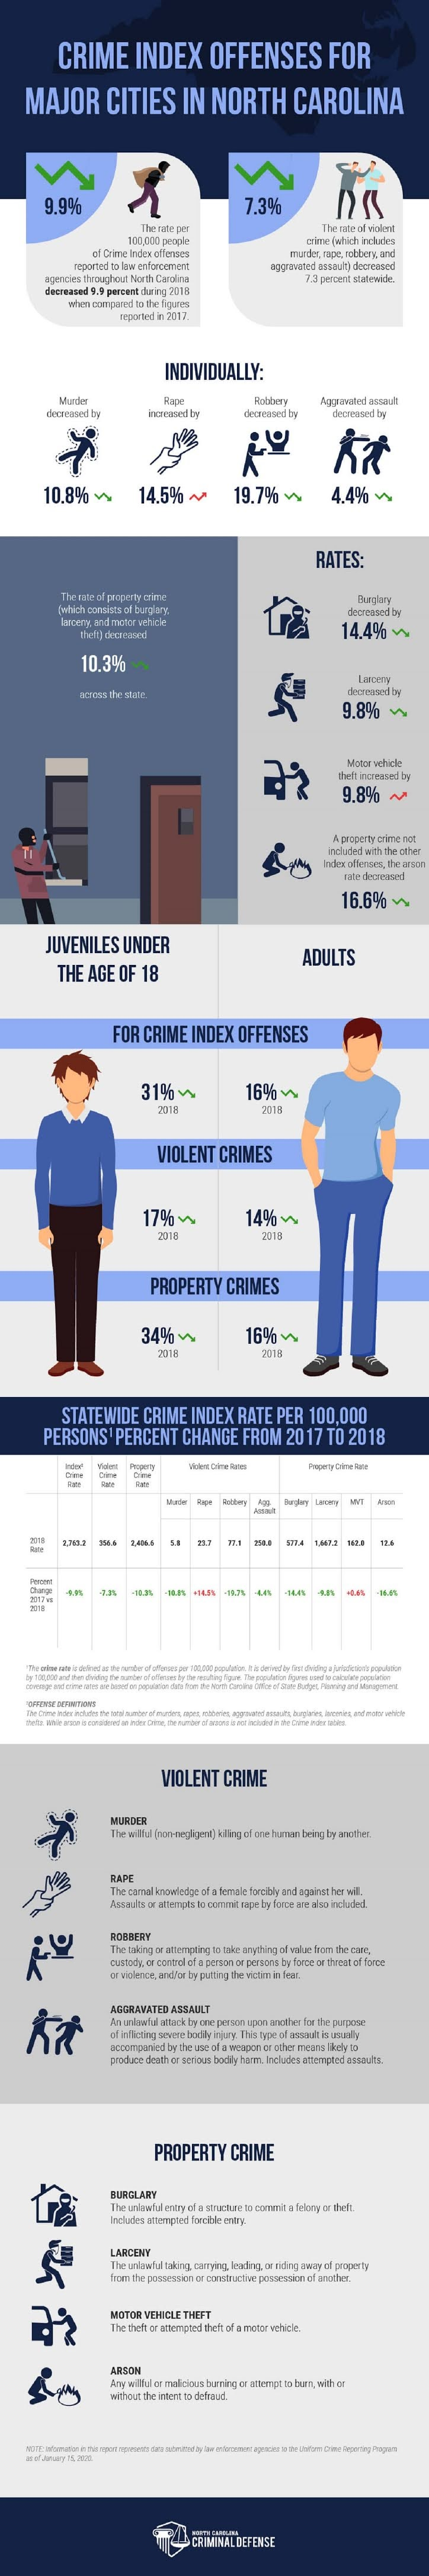 Is Crime on the Rise? Top Crime Statistics of North Carolina